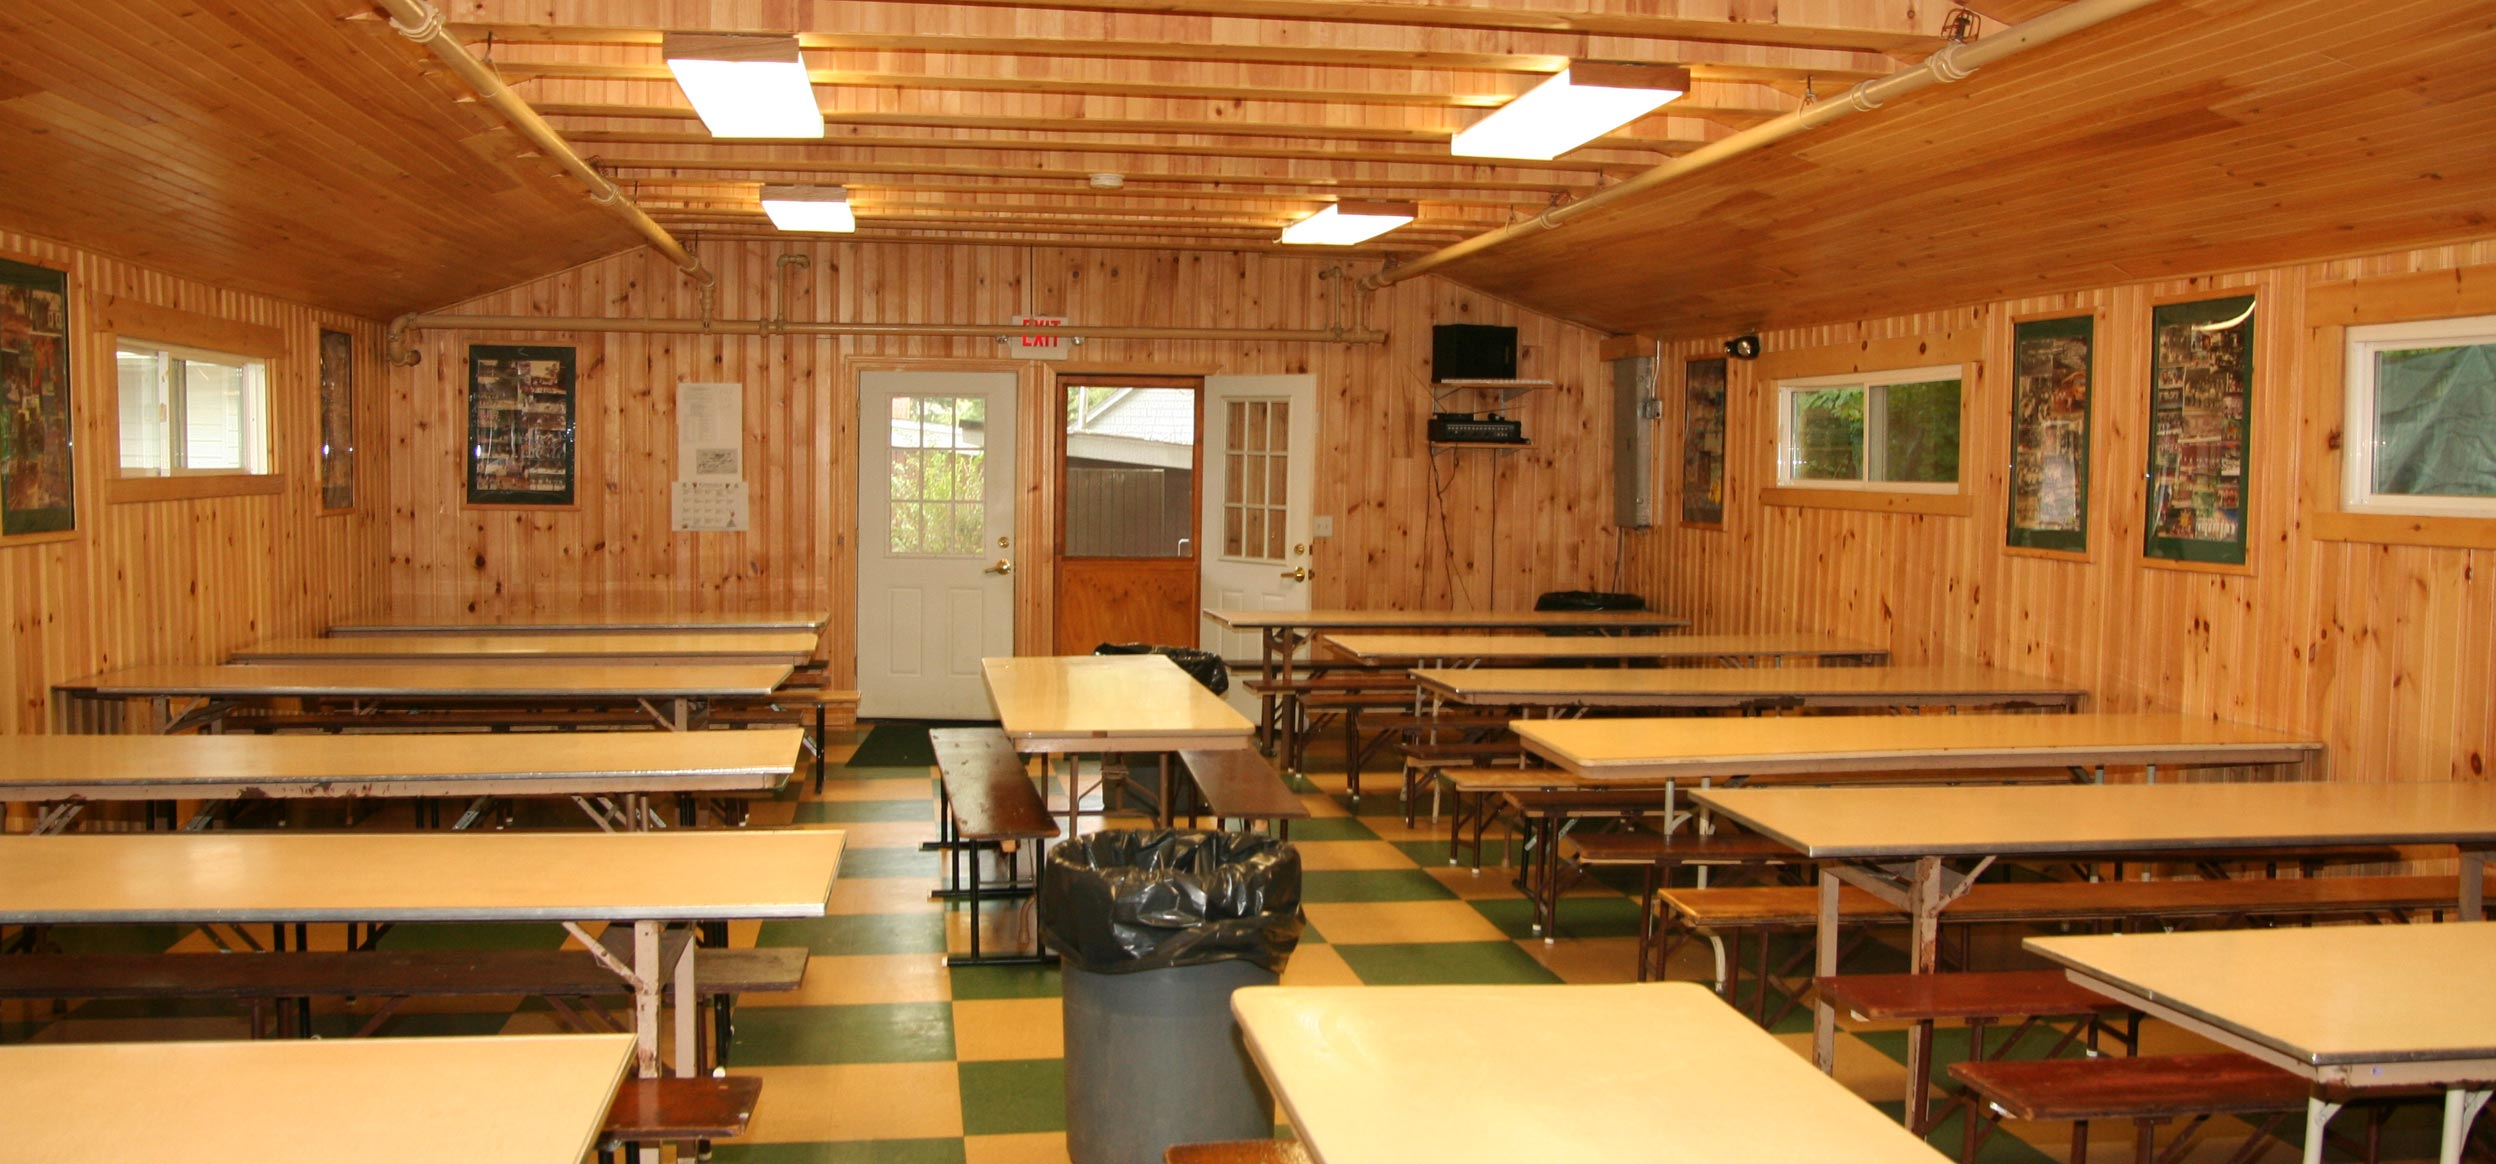 Lunches and Snacks at Camp Hillard Day Camp